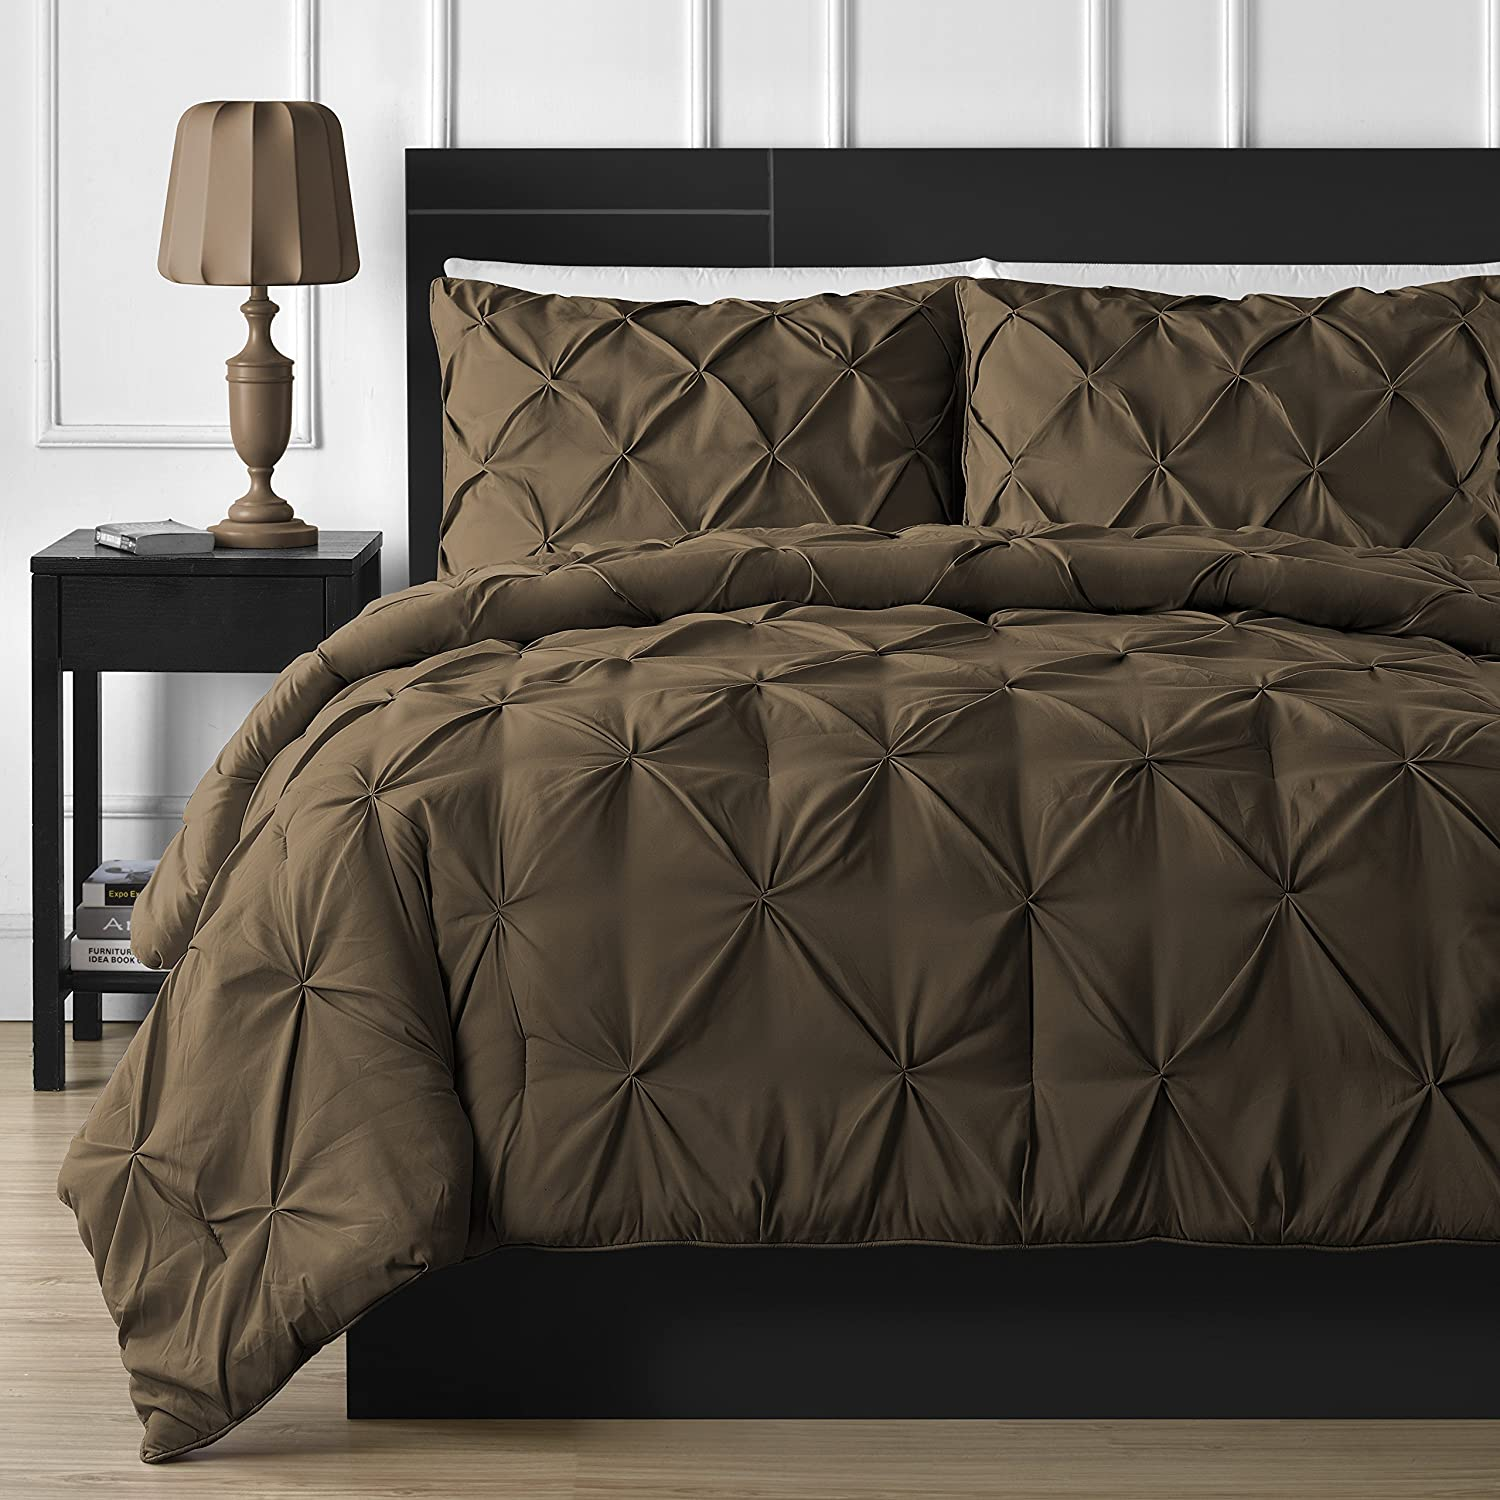 Bedding 3-piece Pinch Pleat Comforter Set Full, Brown